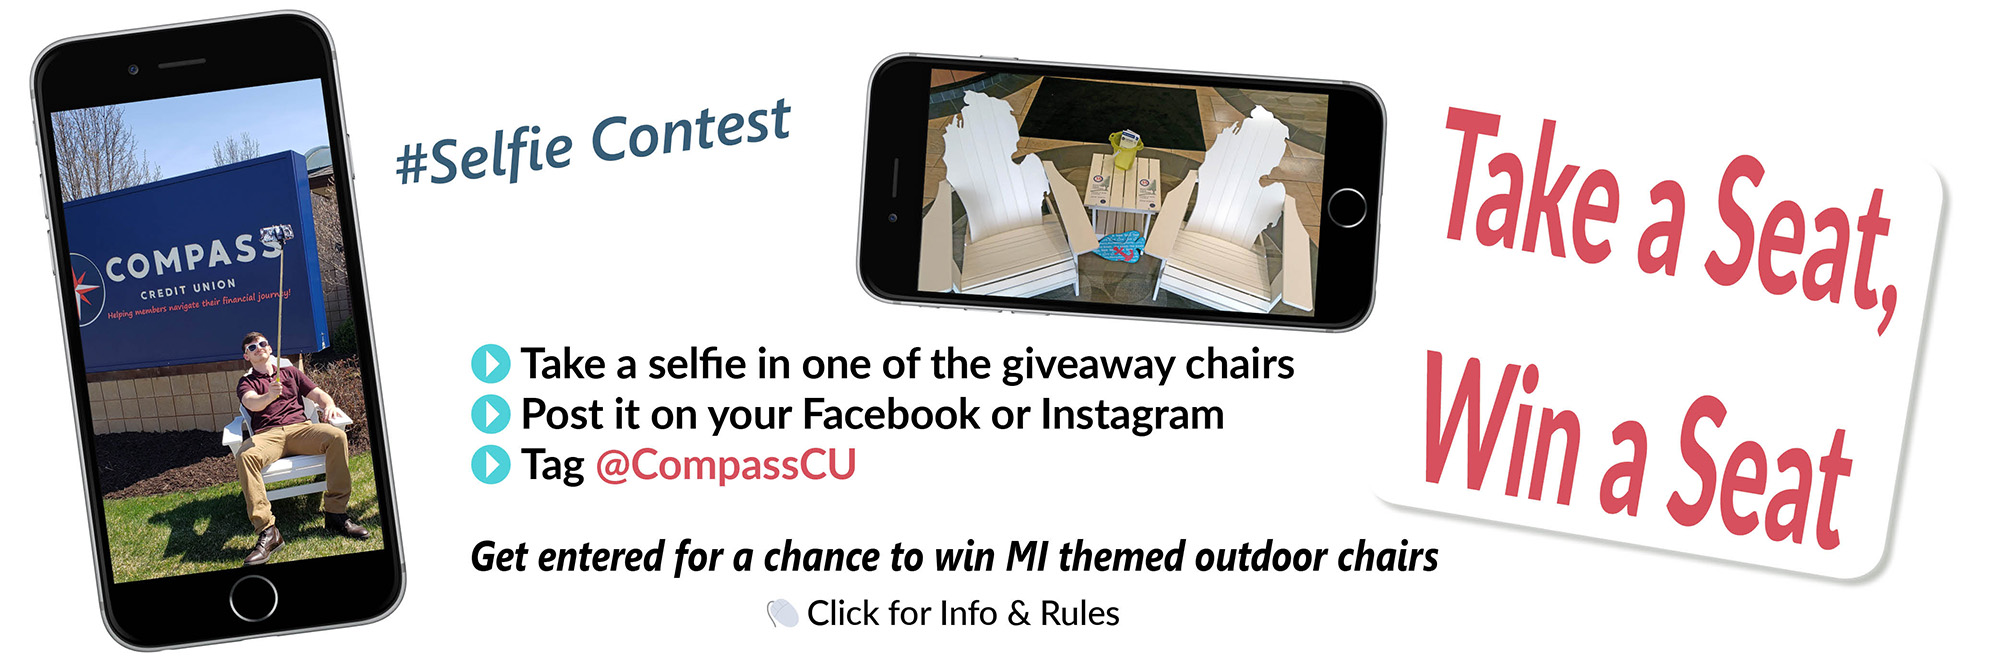 Take A Seat – Selfie Contest